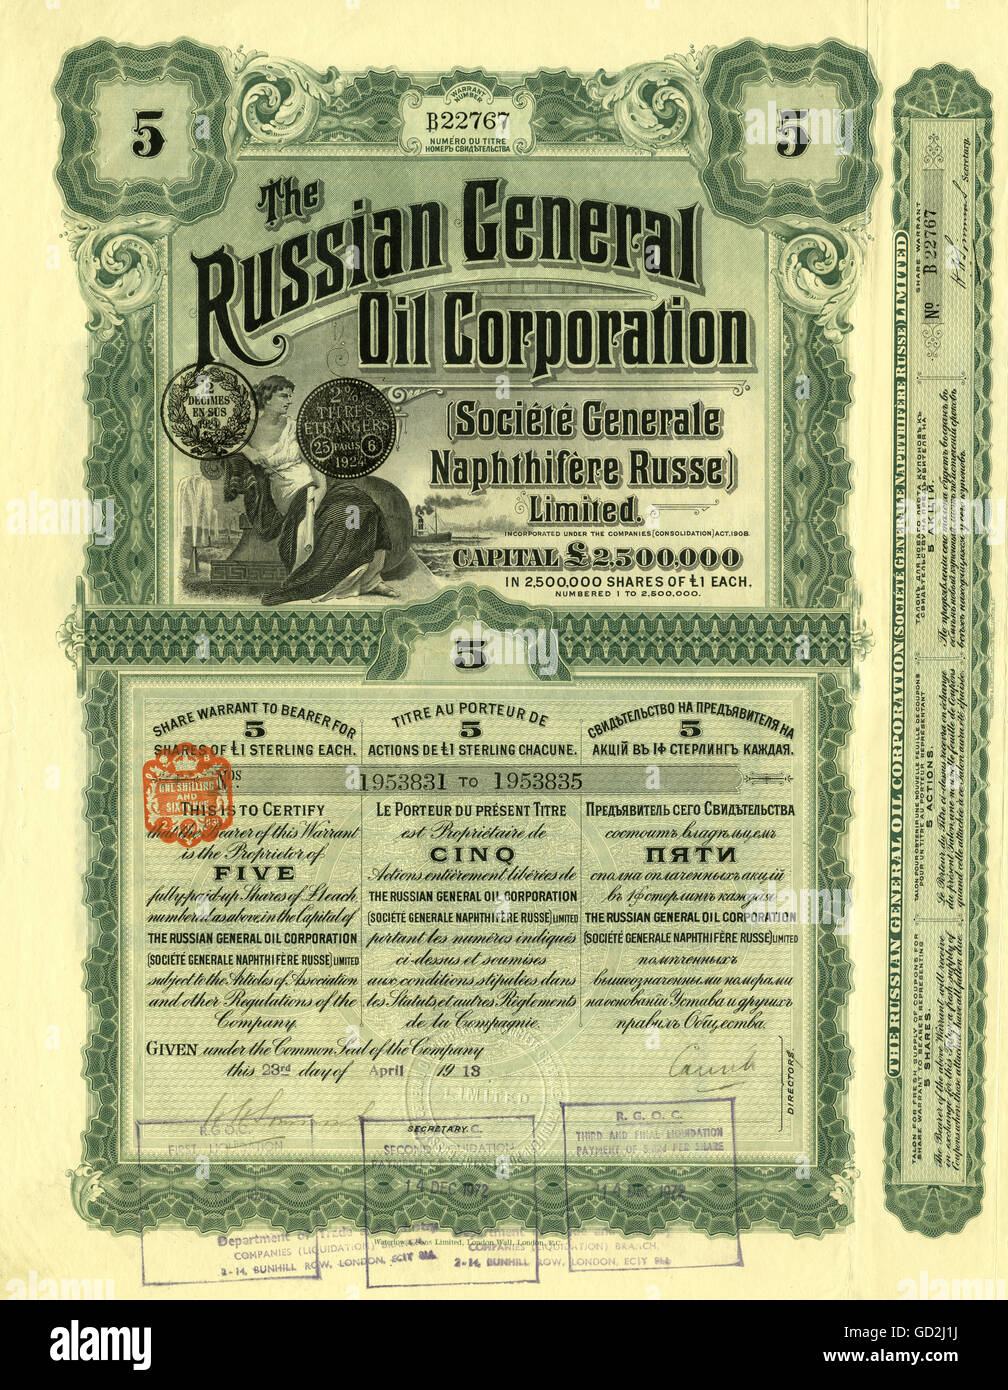 money / finances, share, share of the oil company The Russian General Oil Corporation, RGO, Societé Generale - Stock Image